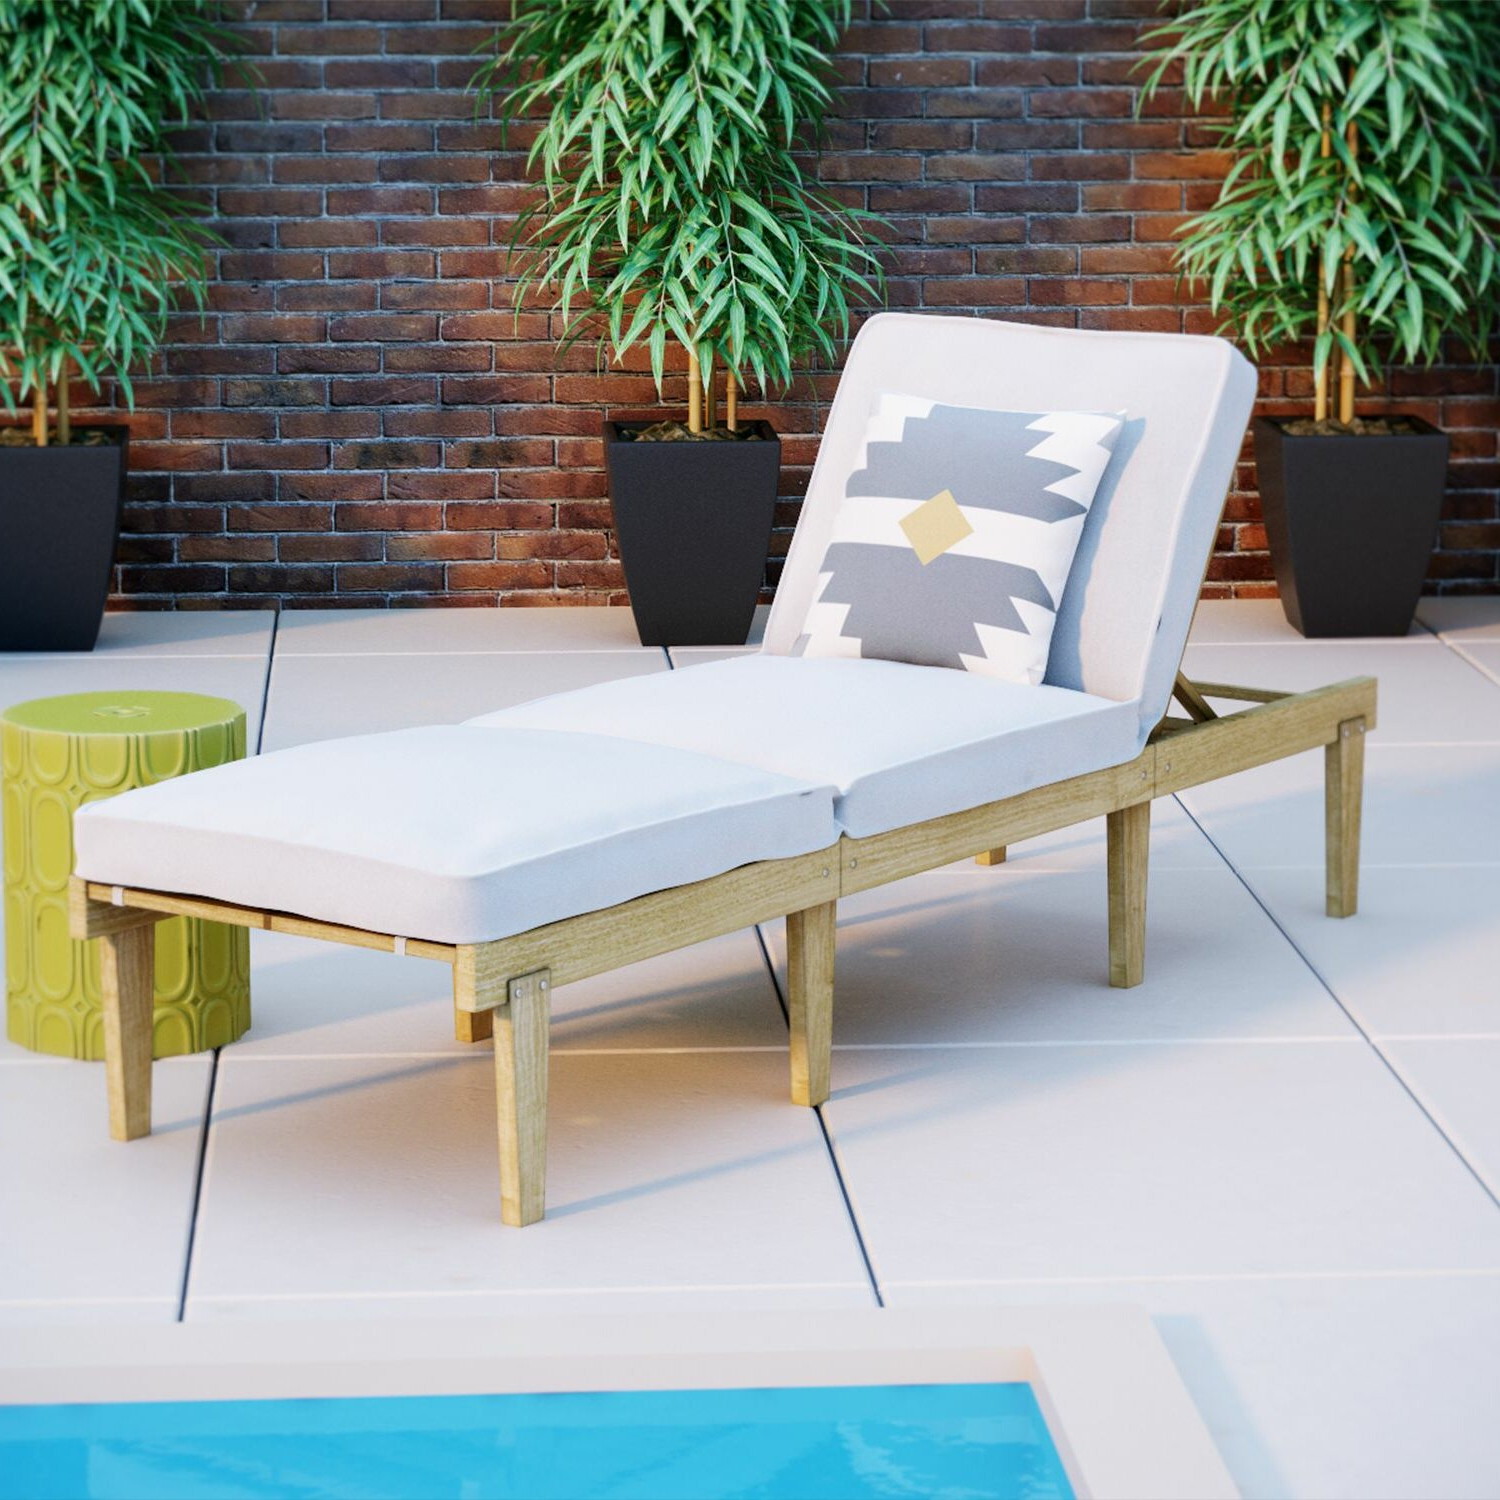 Eucalyptus Teak Finish Outdoor Chaise Loungers With Cushion Throughout Most Popular Ardsley Reclining Teak Chaise Lounge With Cushion (View 8 of 25)